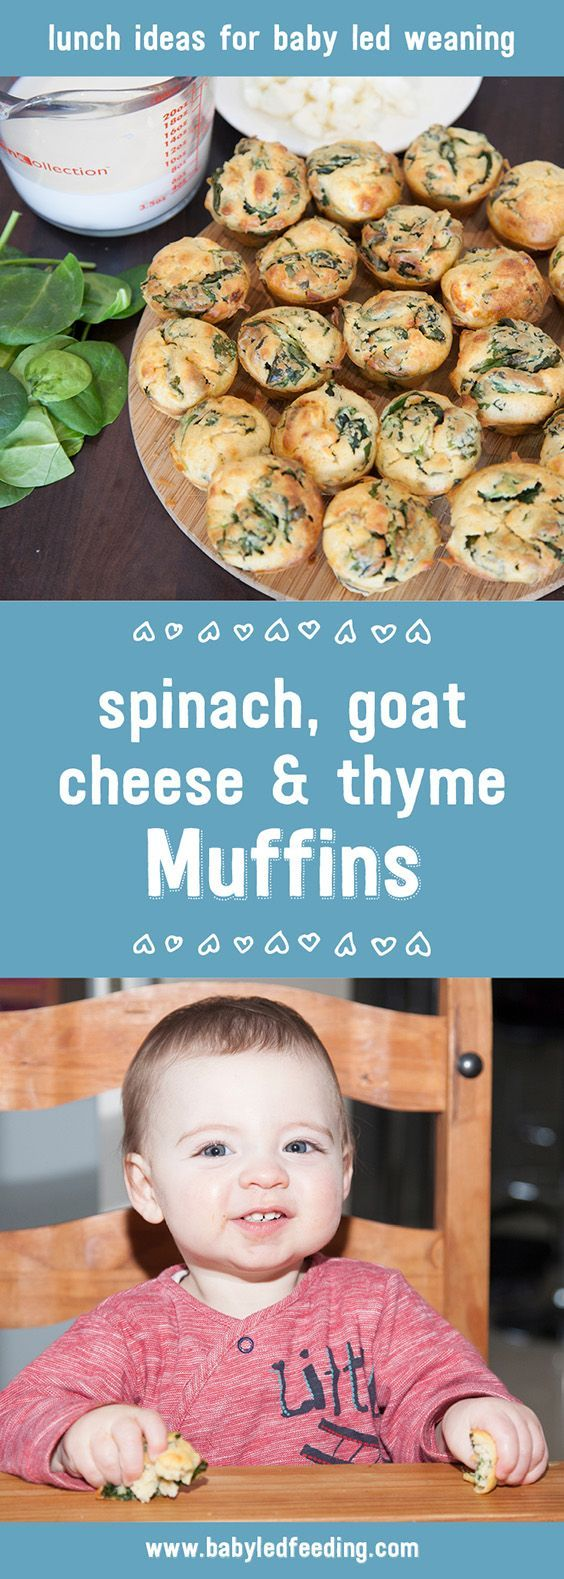 Spinach, Goat Cheese and Thyme Muffins are easy for tiny hands to manage themselves. They're full of iron and other vitamins ideal for blw. #babyledweaning #blw #kidfood #kidfriendlyfood #babyfood #toddlerfood